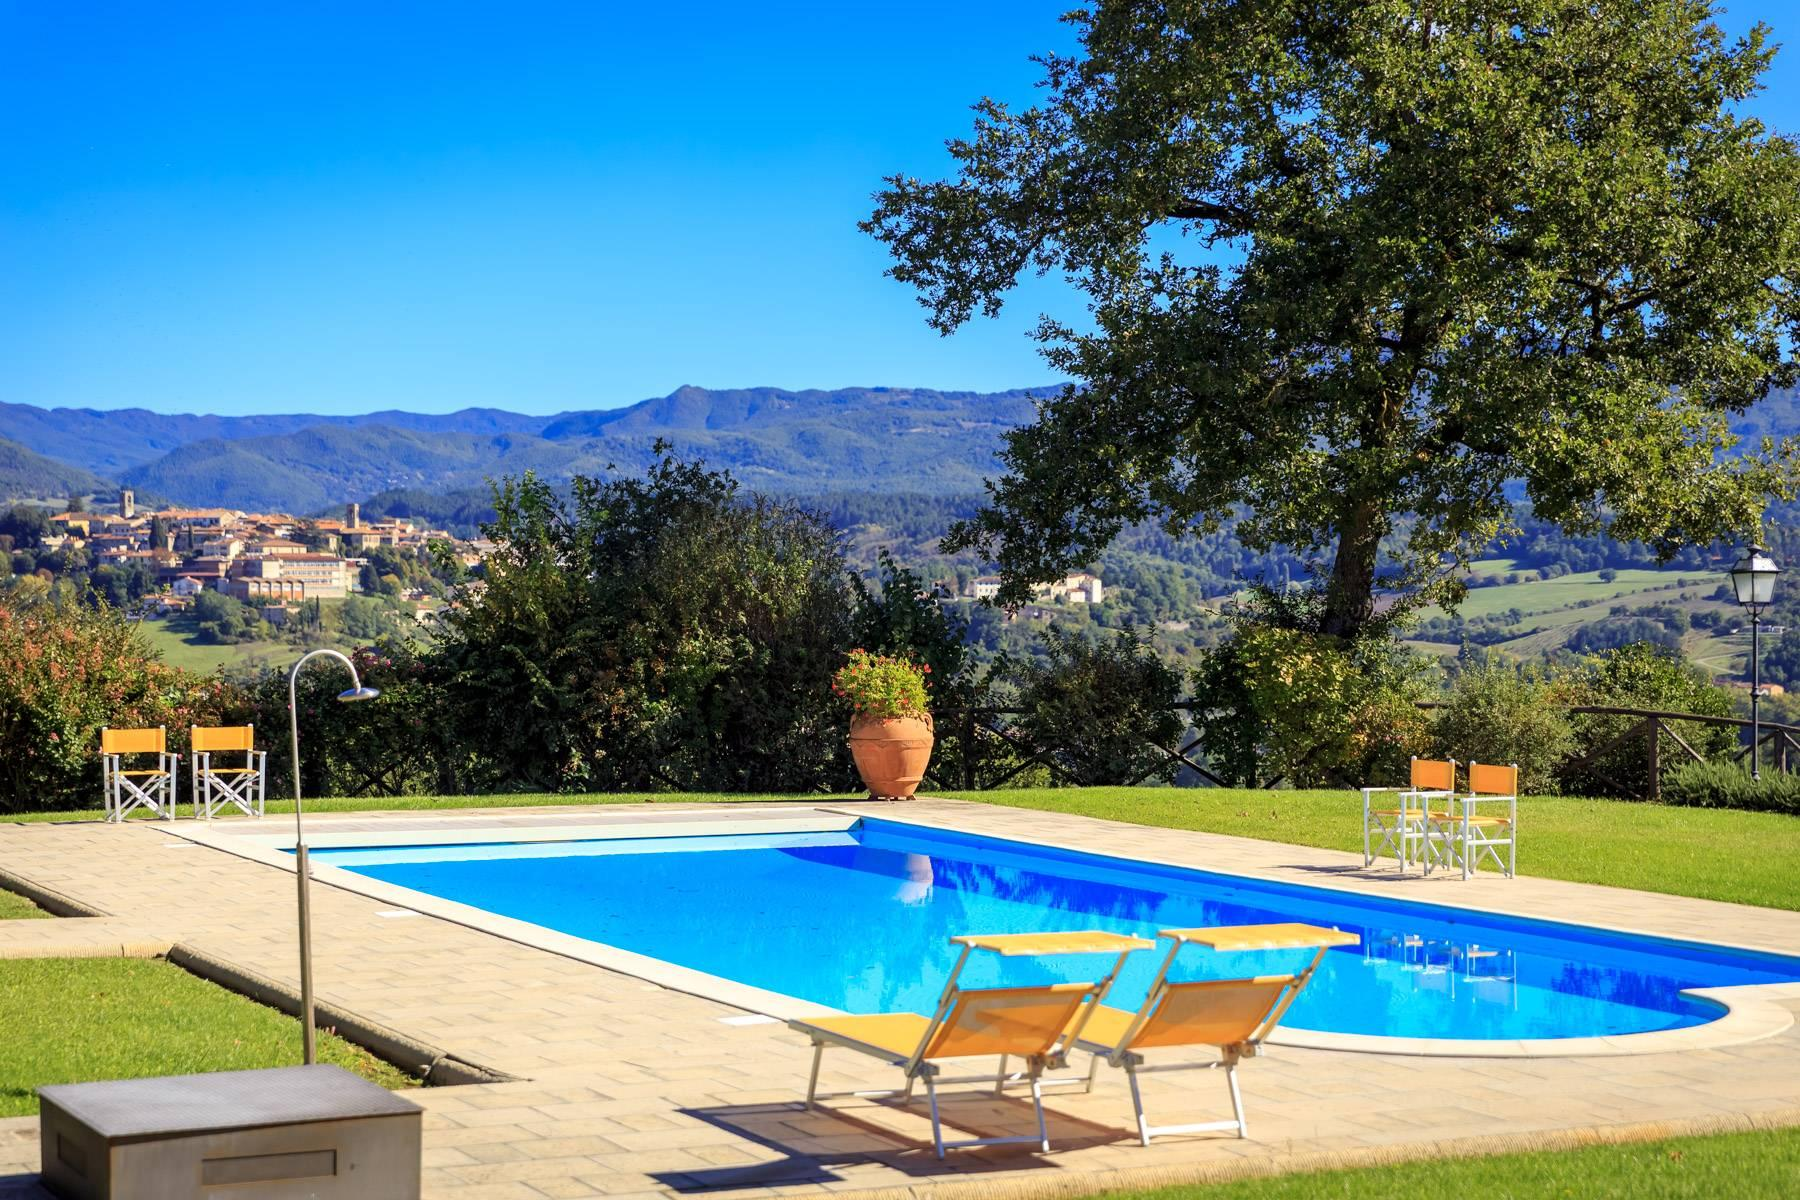 Marvelous estate with views over the Casentino valley - 30